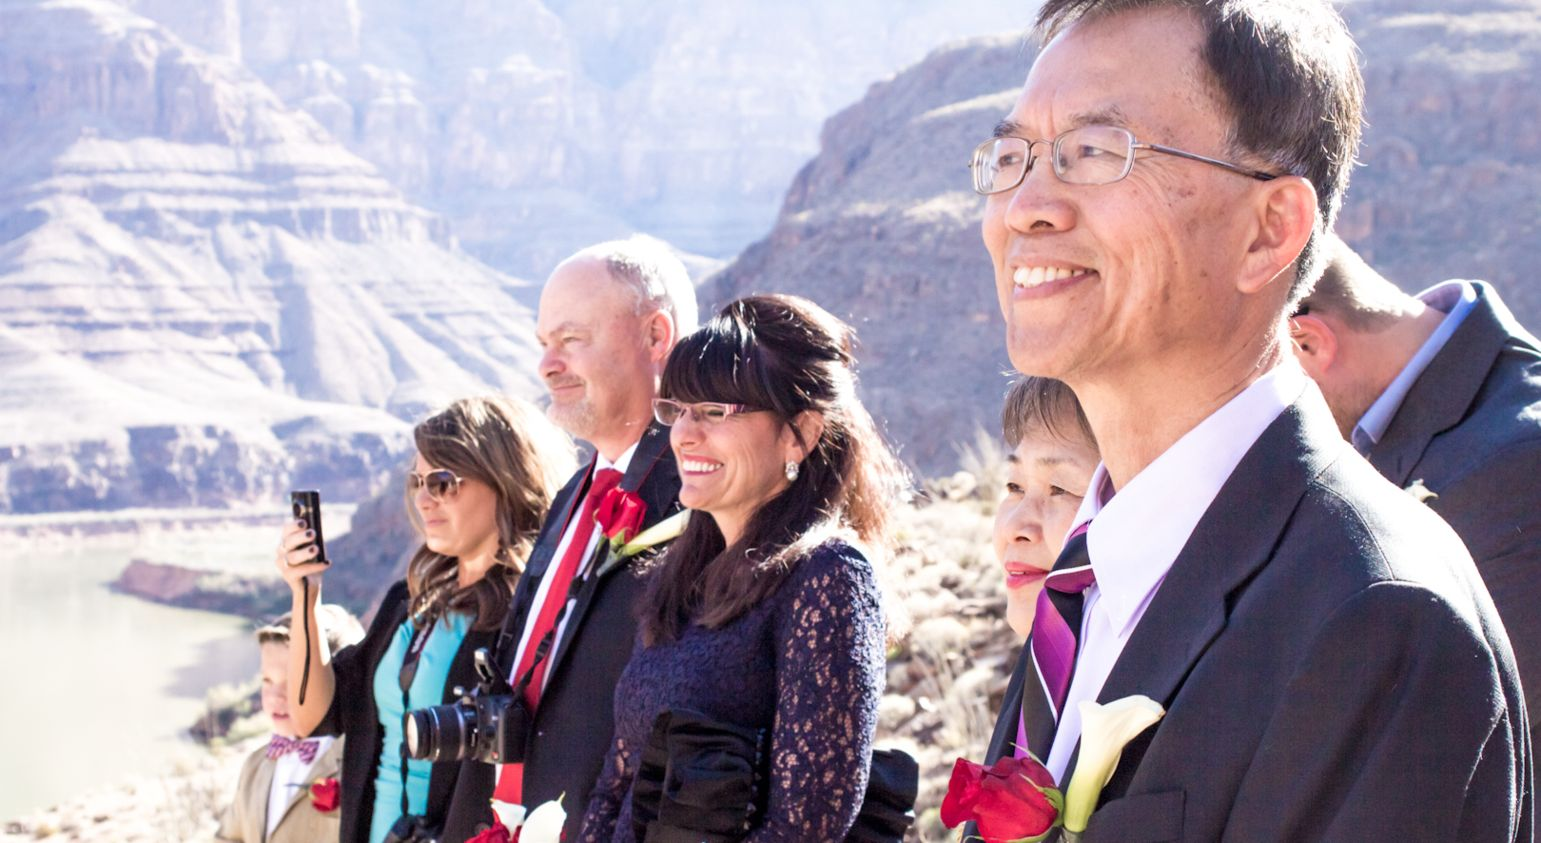 Several spectators at a Grand Canyon wedding.